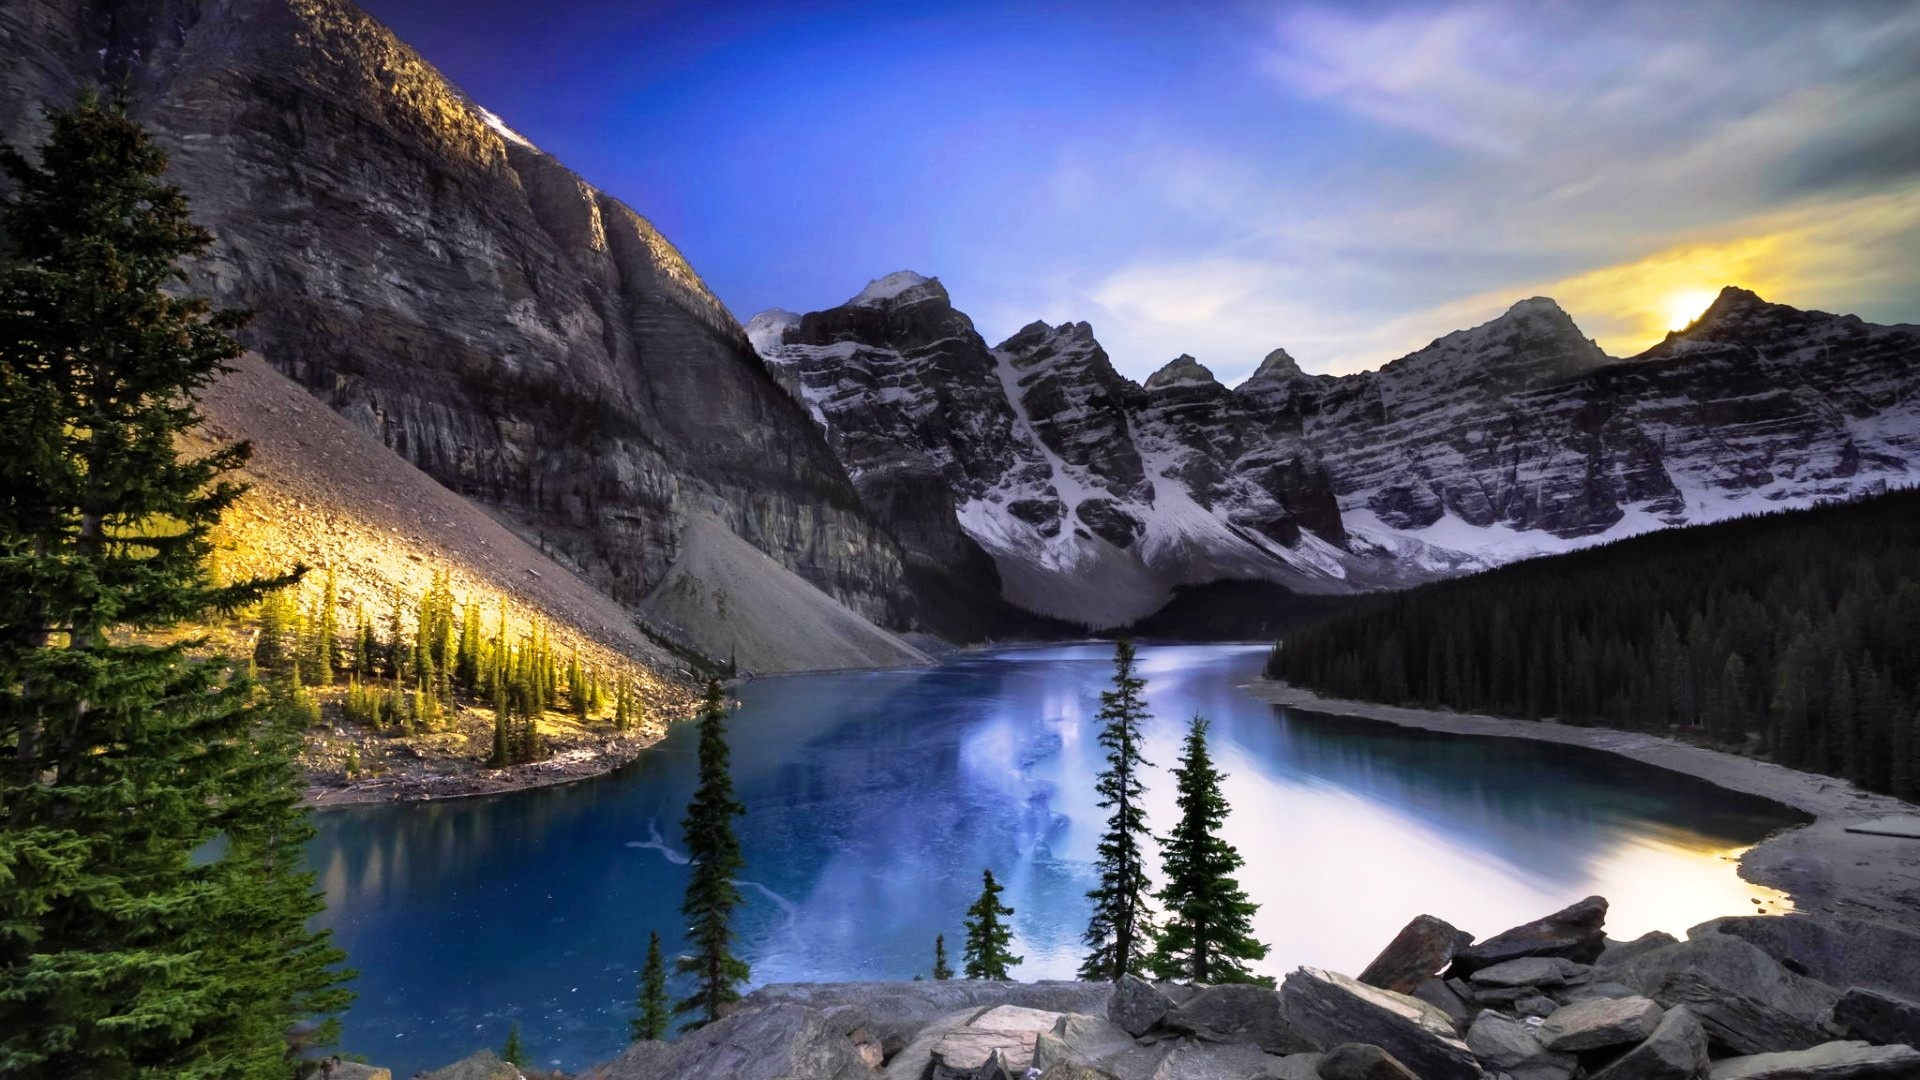 lake alberta mountain and forest wallpapers - 1920x1080